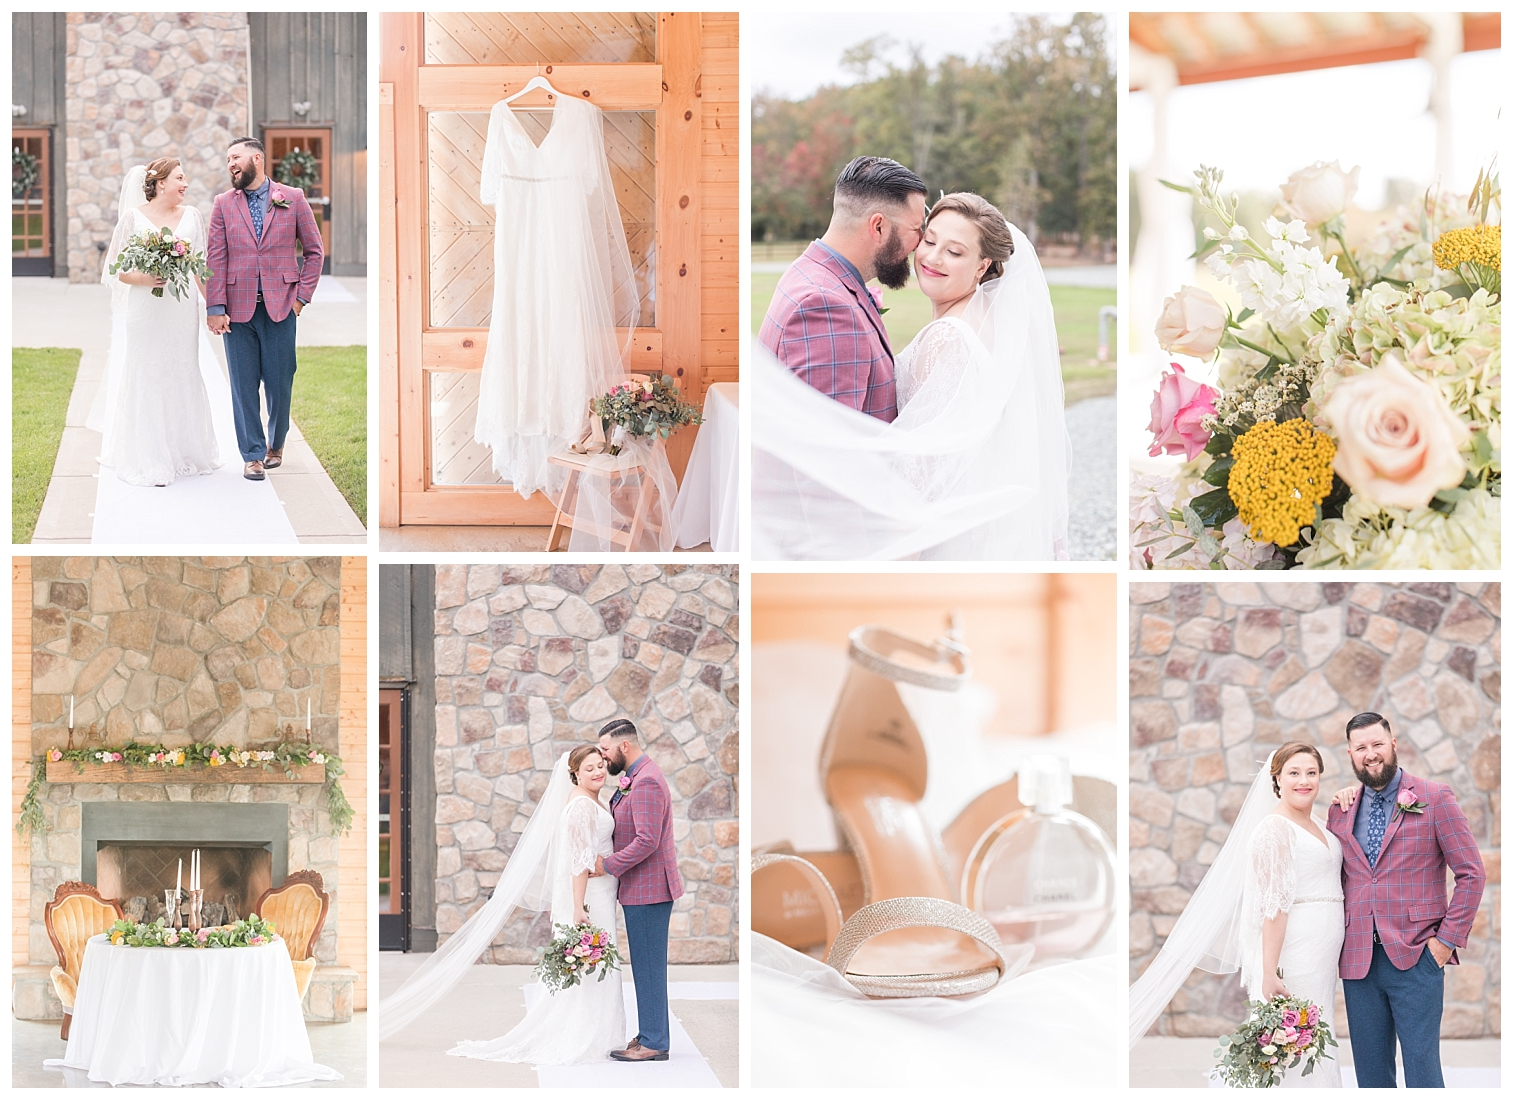 Bre & Harrison | Fall Wedding| VA Wedding Photographer | Christina Chapman Photography